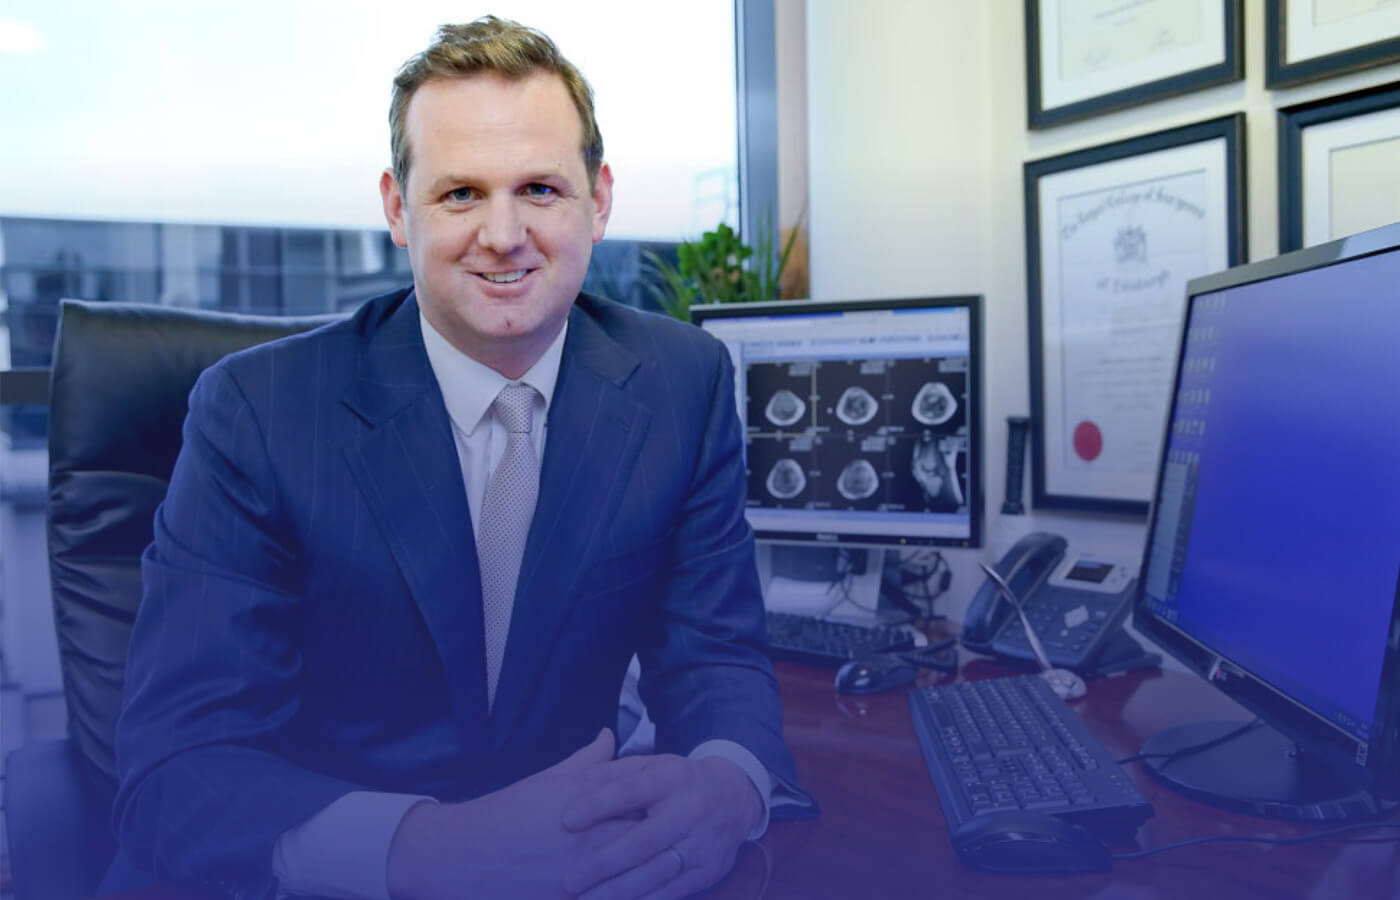 A photo of Professor Cathal Moran, knee and shoulder specialist, in office in Sports Surgery Clinic, Santry, Dublin